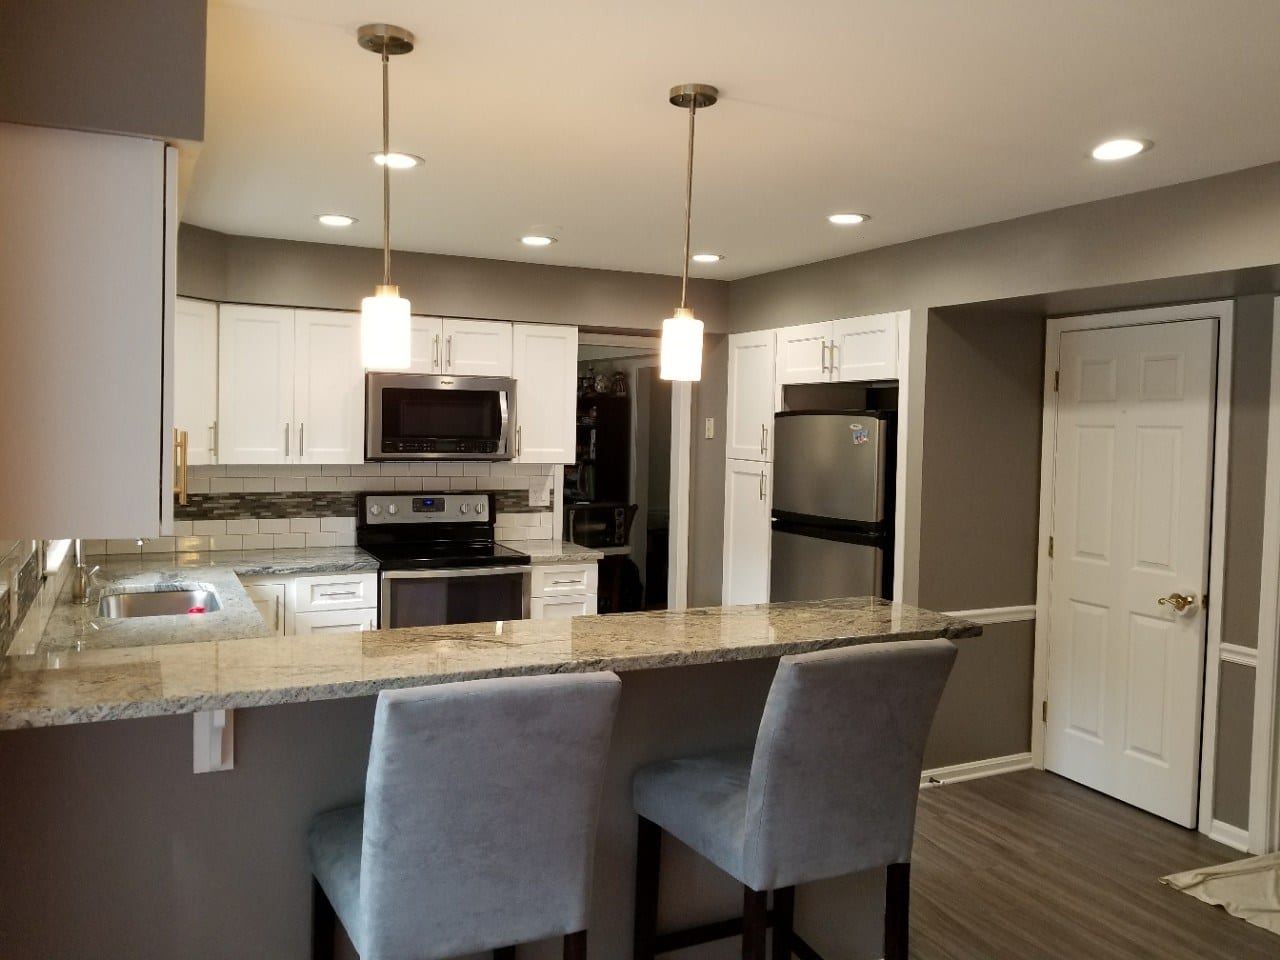 Don't Fall For a Low Price Kitchen Renovation in Baltimore